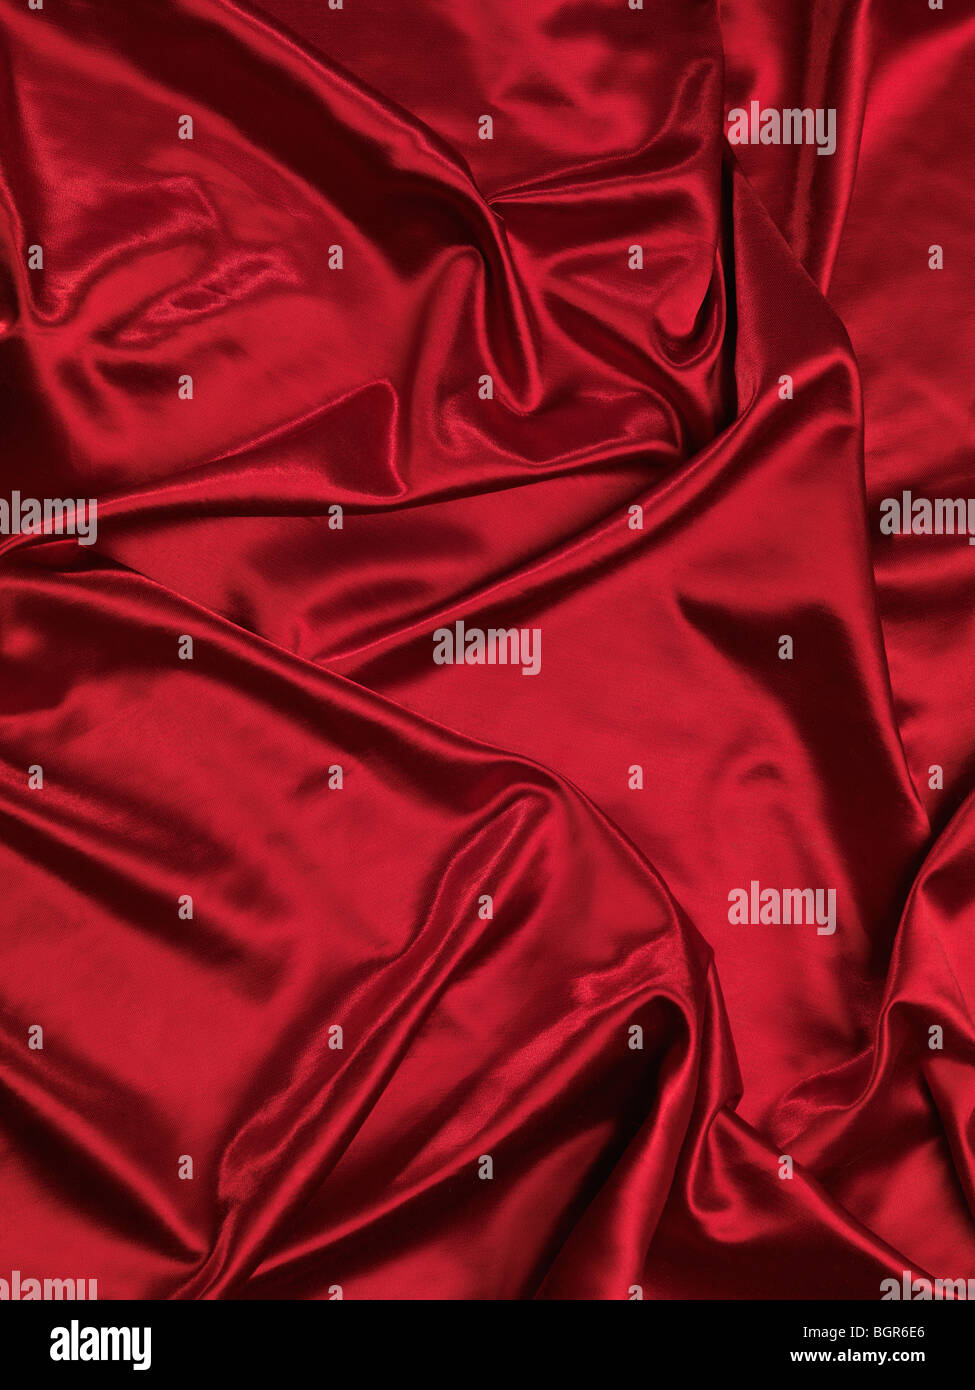 Red shiny silky fabric background - Stock Image